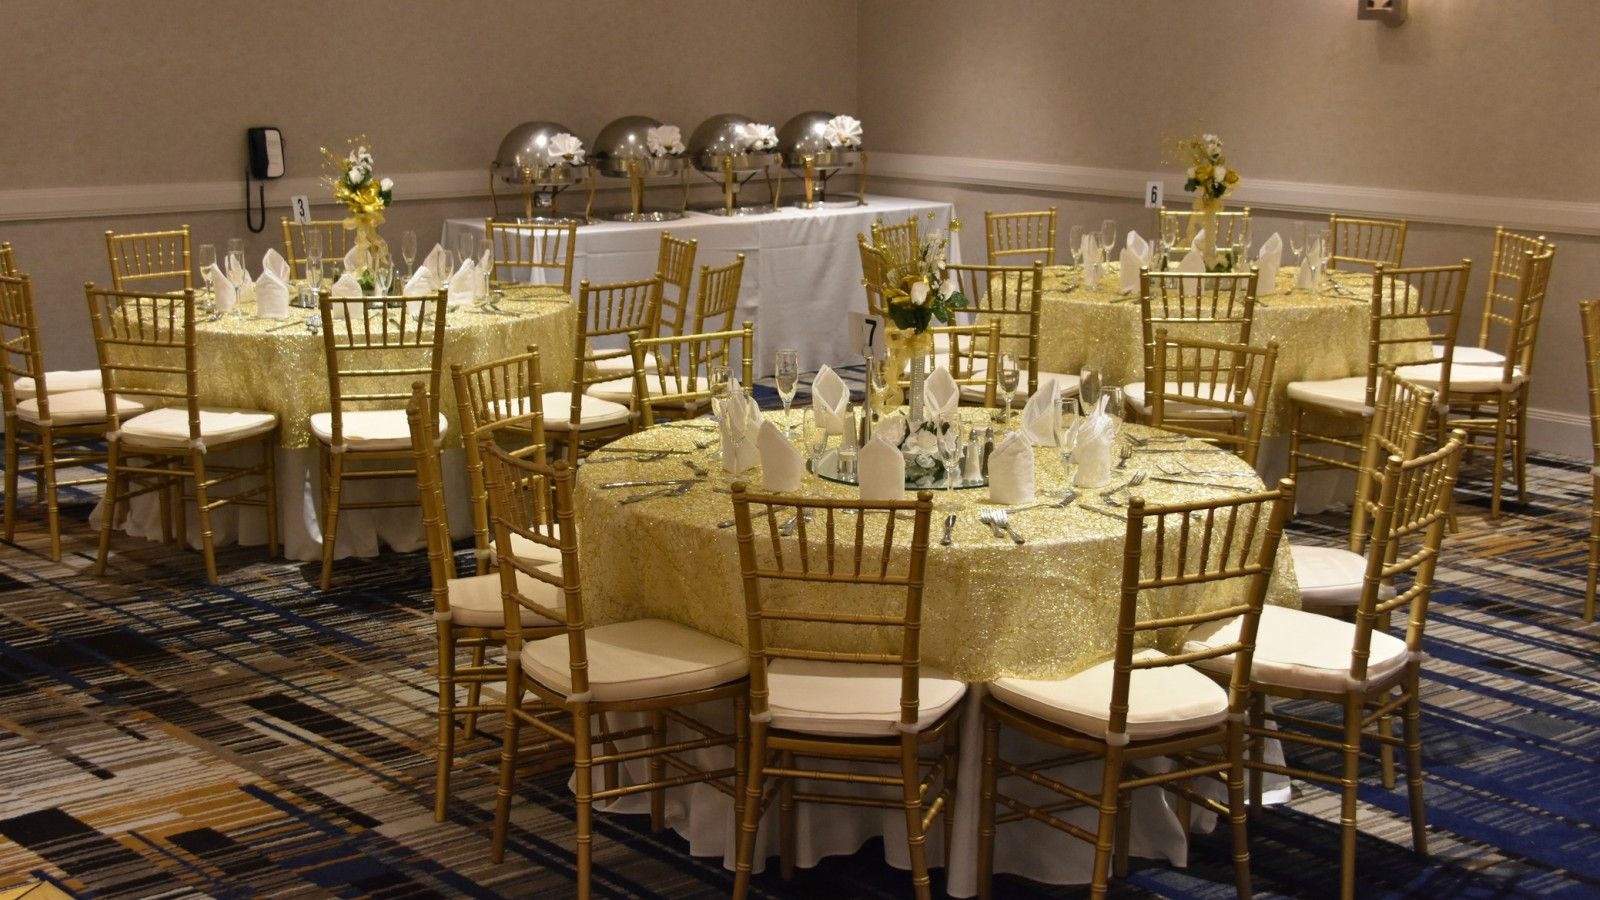 Wedding Venues Los Angeles - Banquet